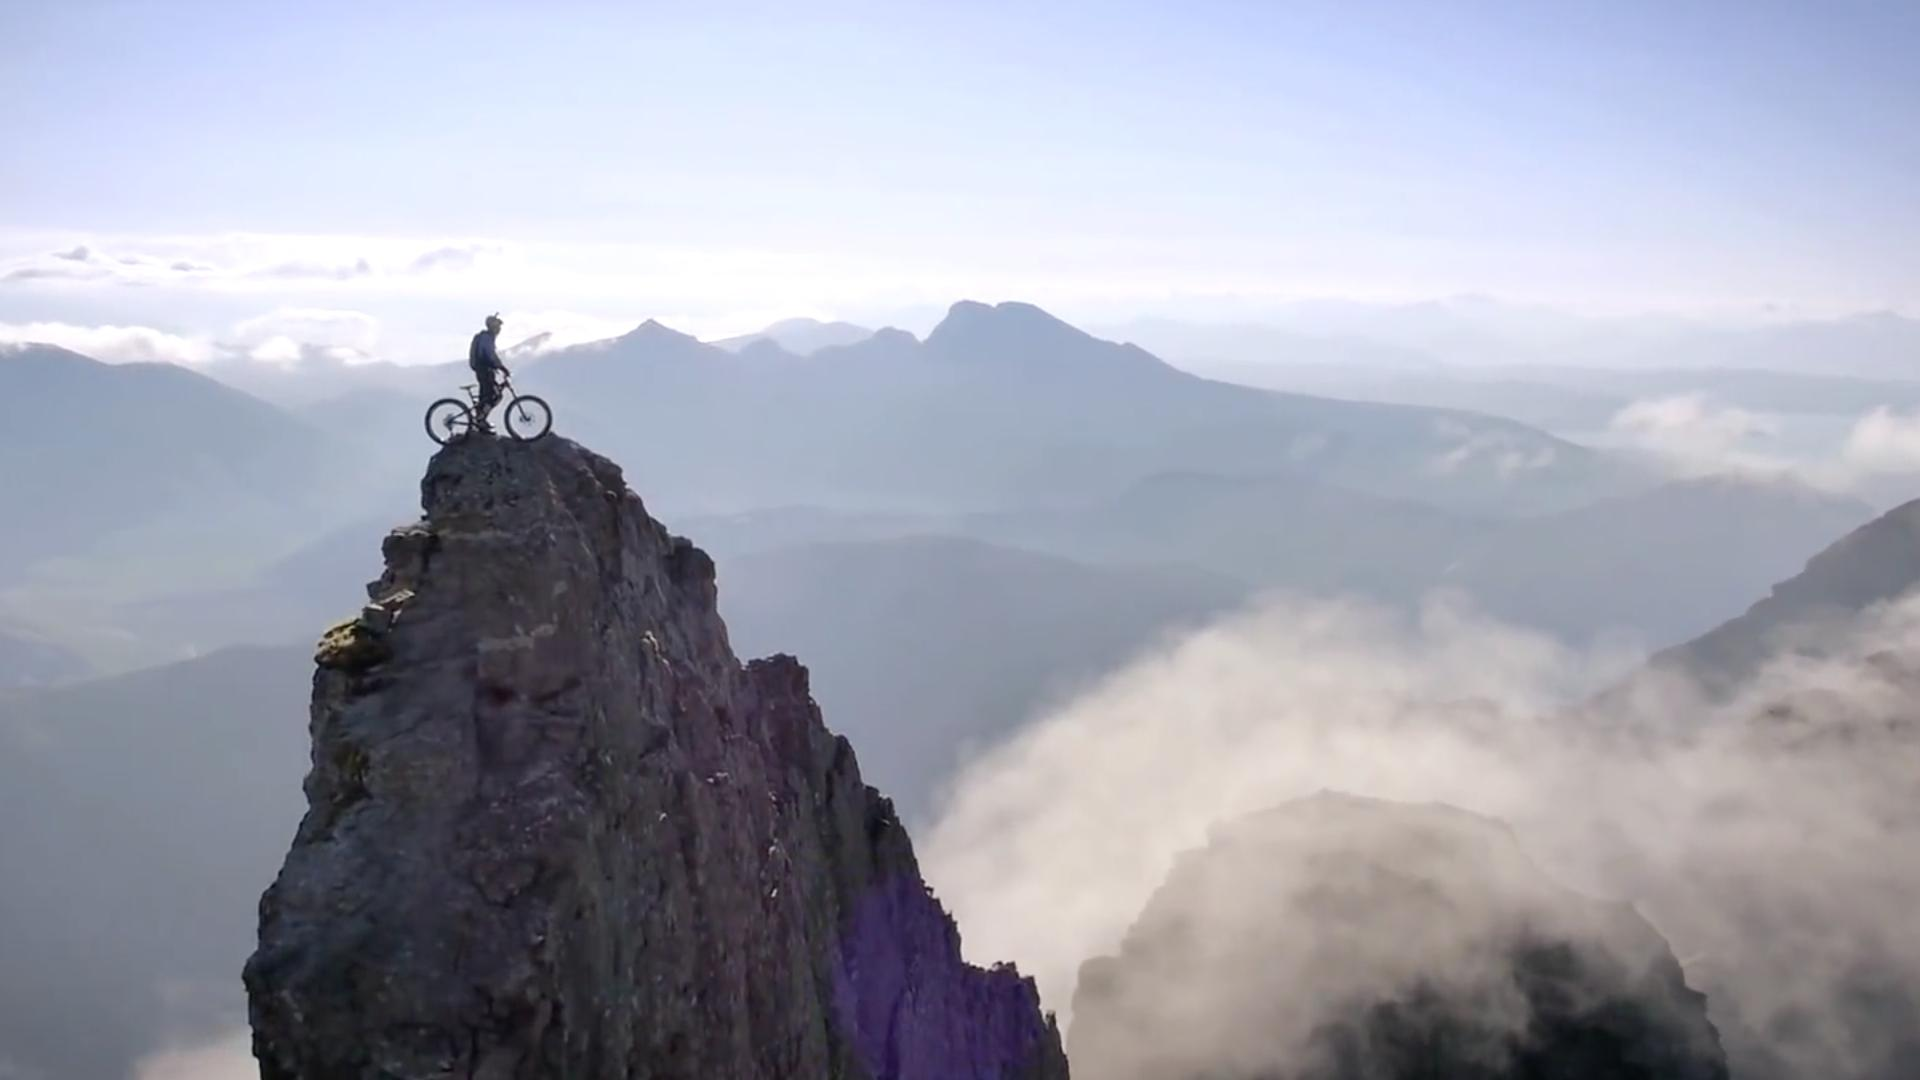 Danny Macaskill   The Ridge 19201080 iimgurcom 1920x1080